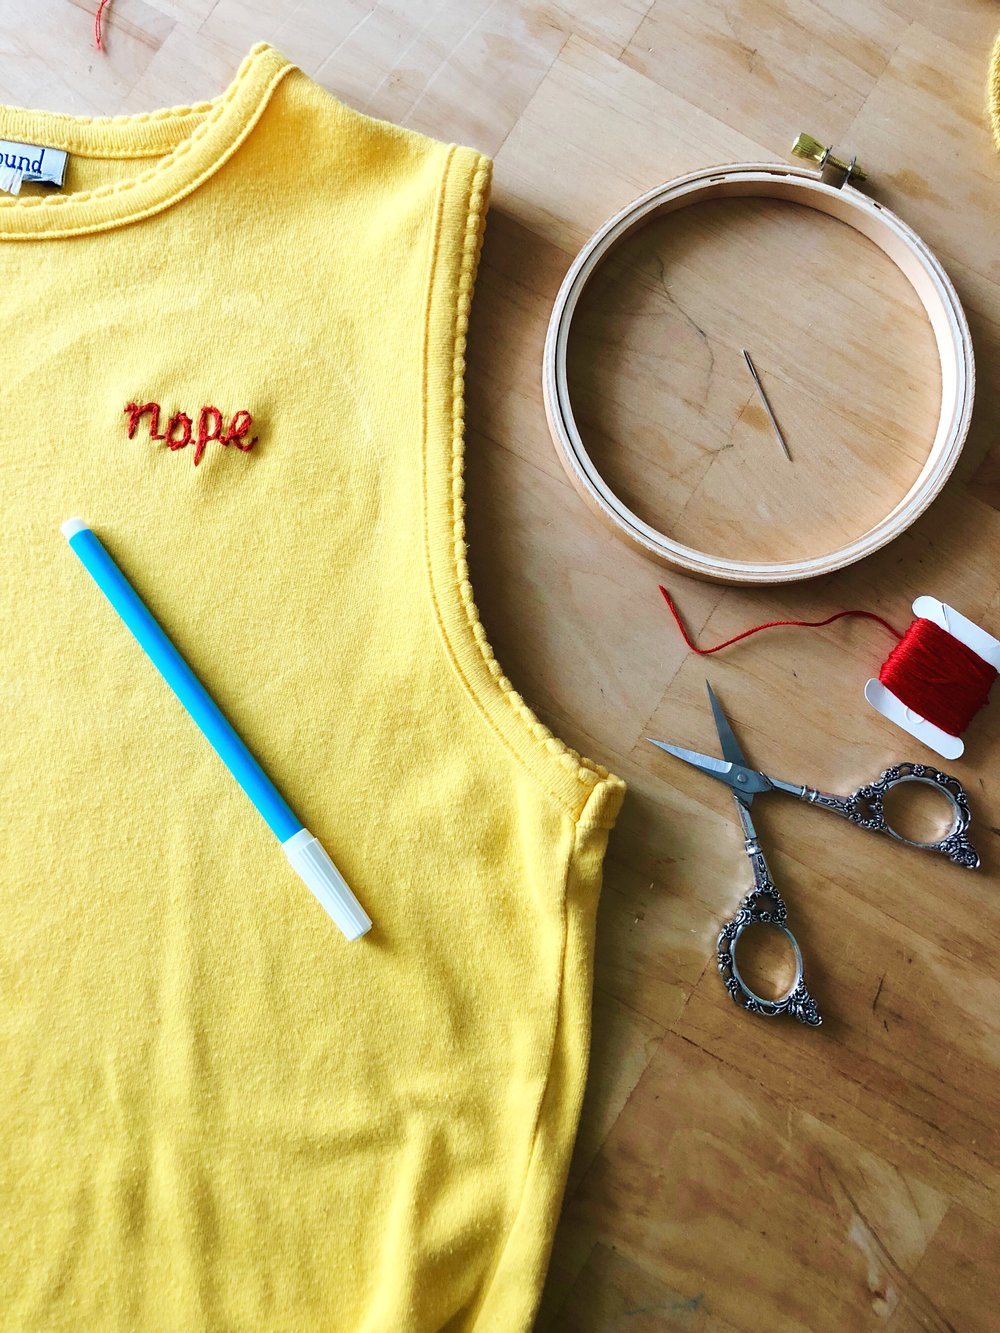 How To Embroider Words Onto Clothing Stitch Sayings Crewel